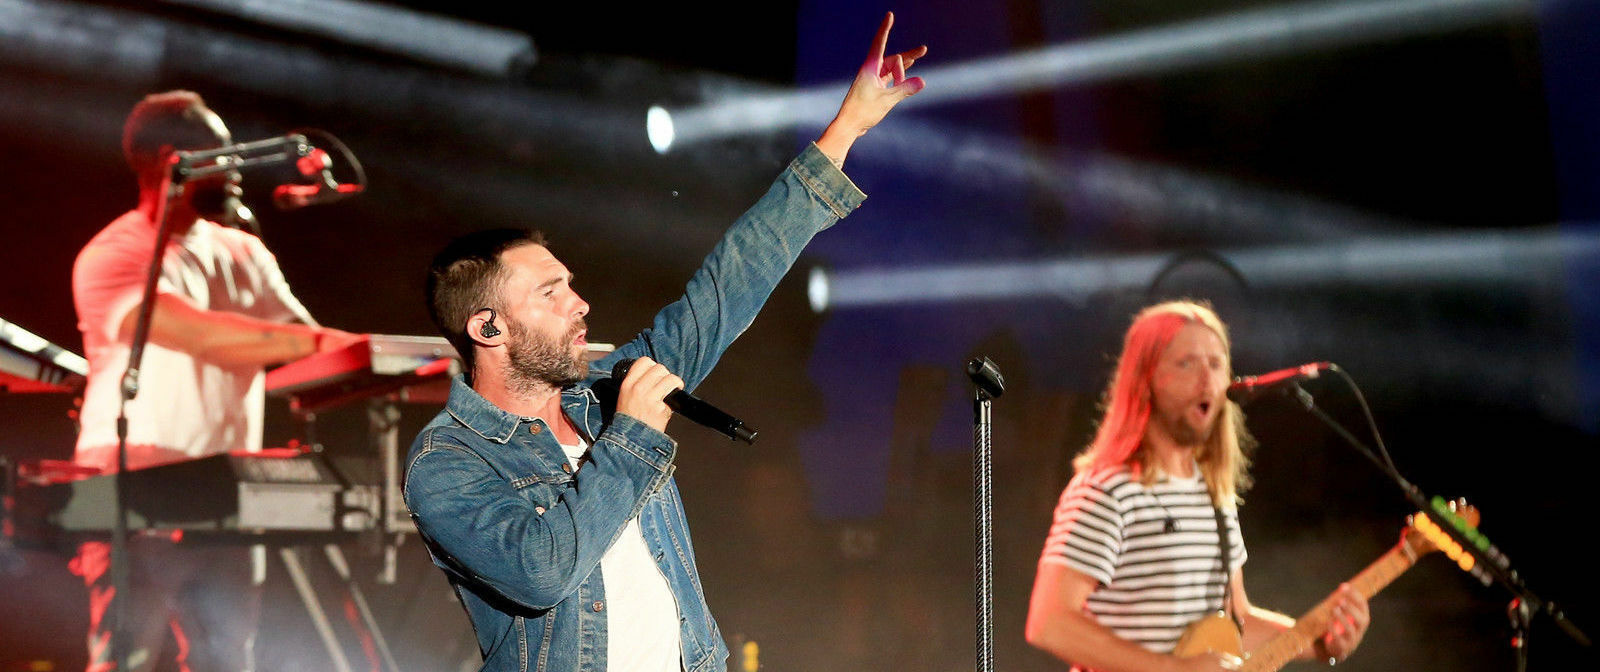 2018 Concert for Legends featuring Maroon 5